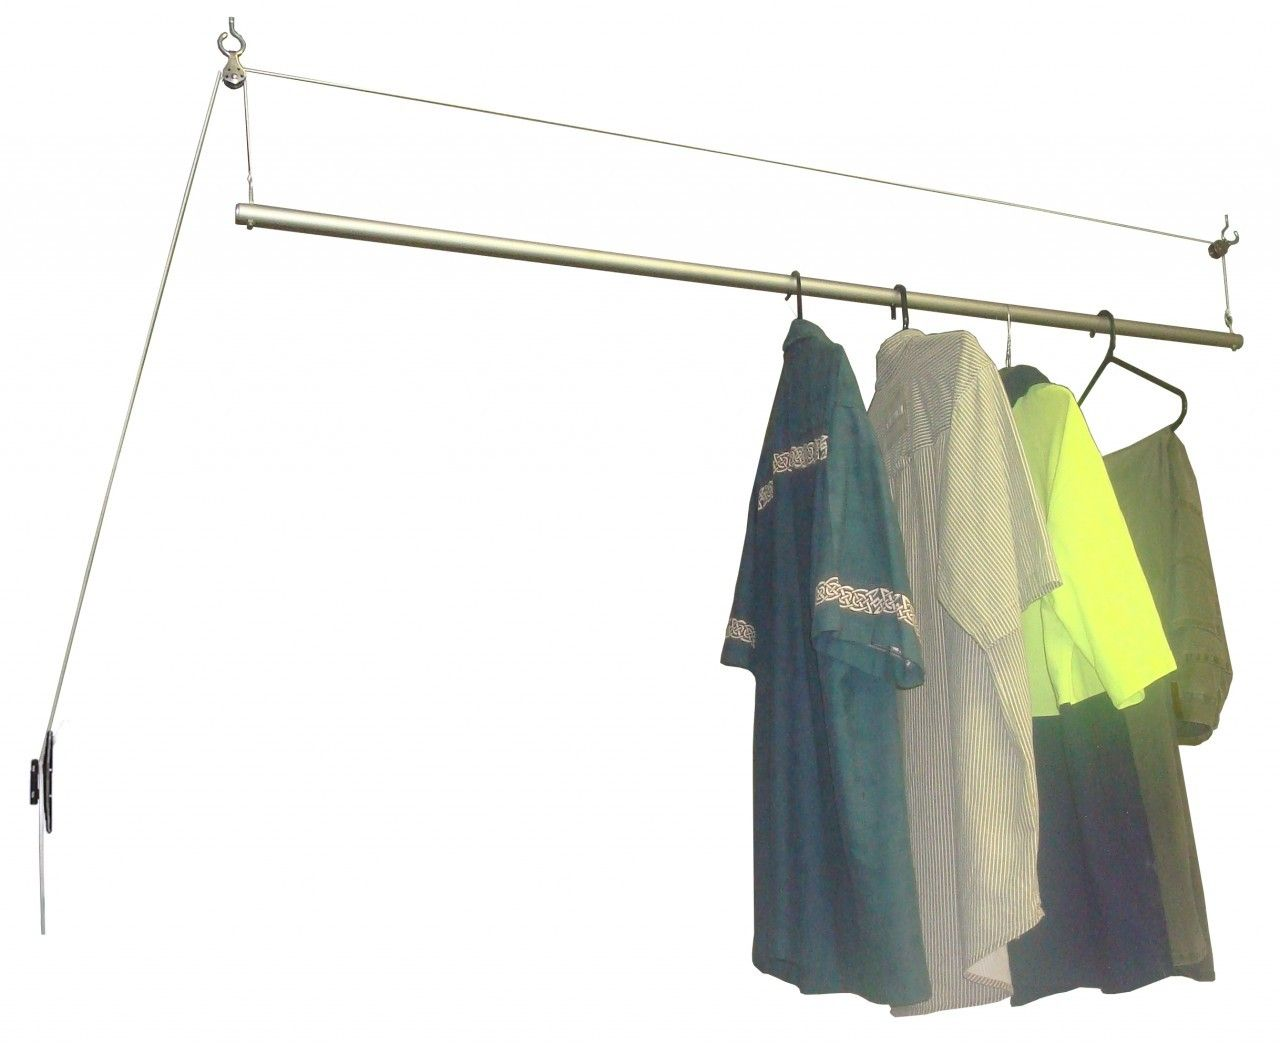 versaline pulley rail airer uses a very simple pulley system to